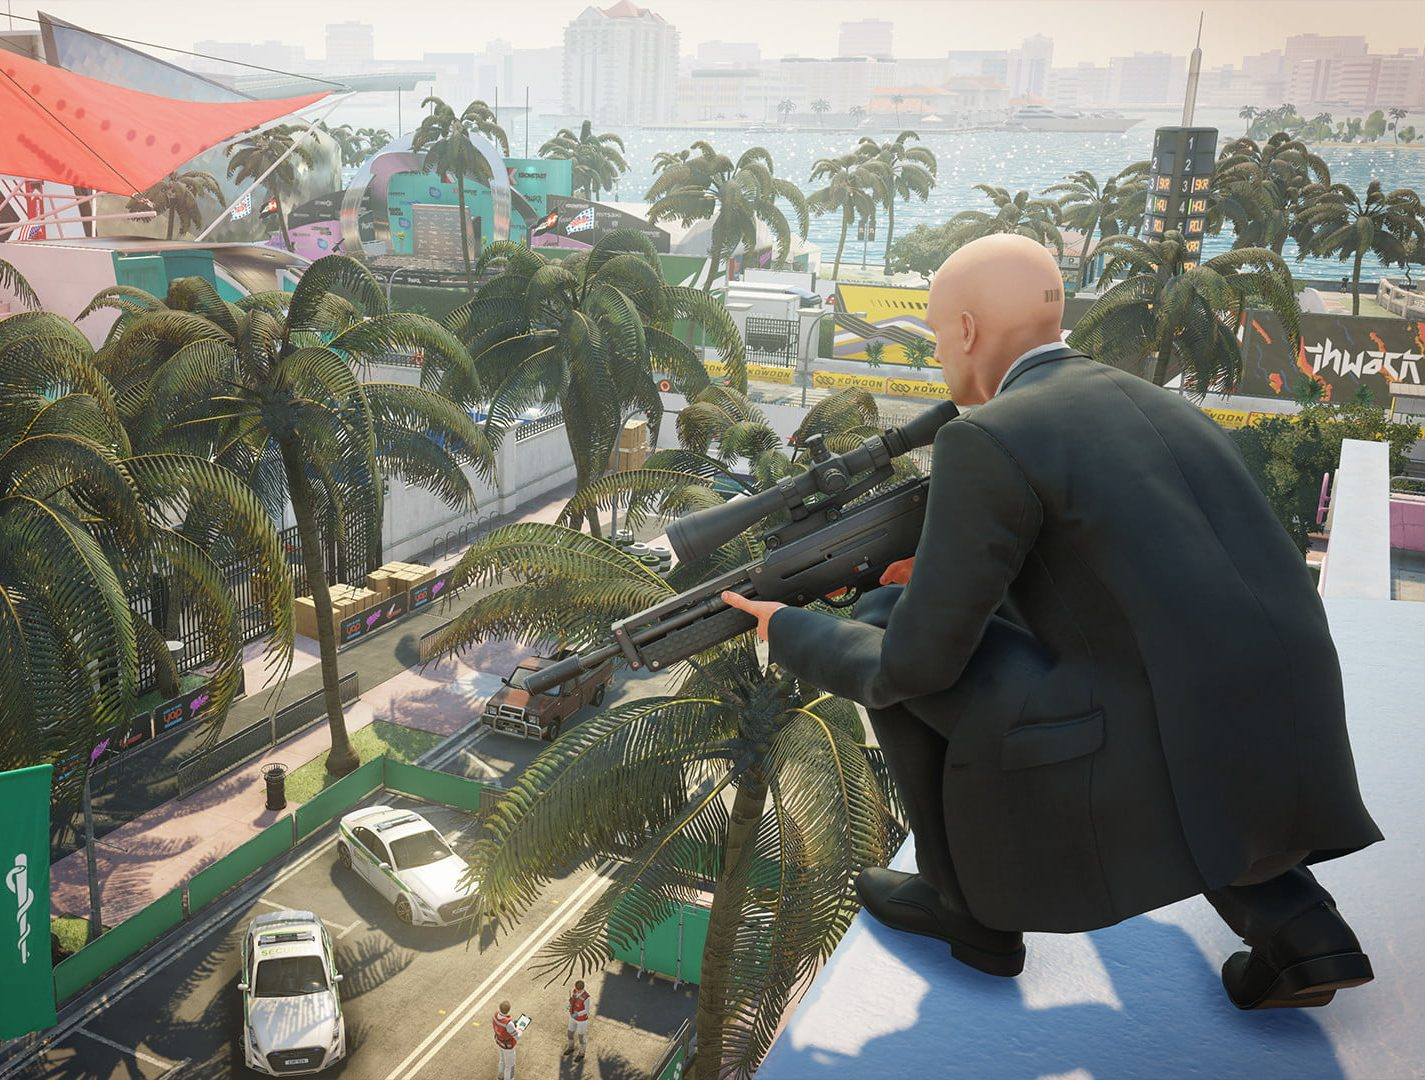 hitman 2 hands on 29073 e1605260316608 20 Video Games You Never Knew Were Inspired By Famous Movies